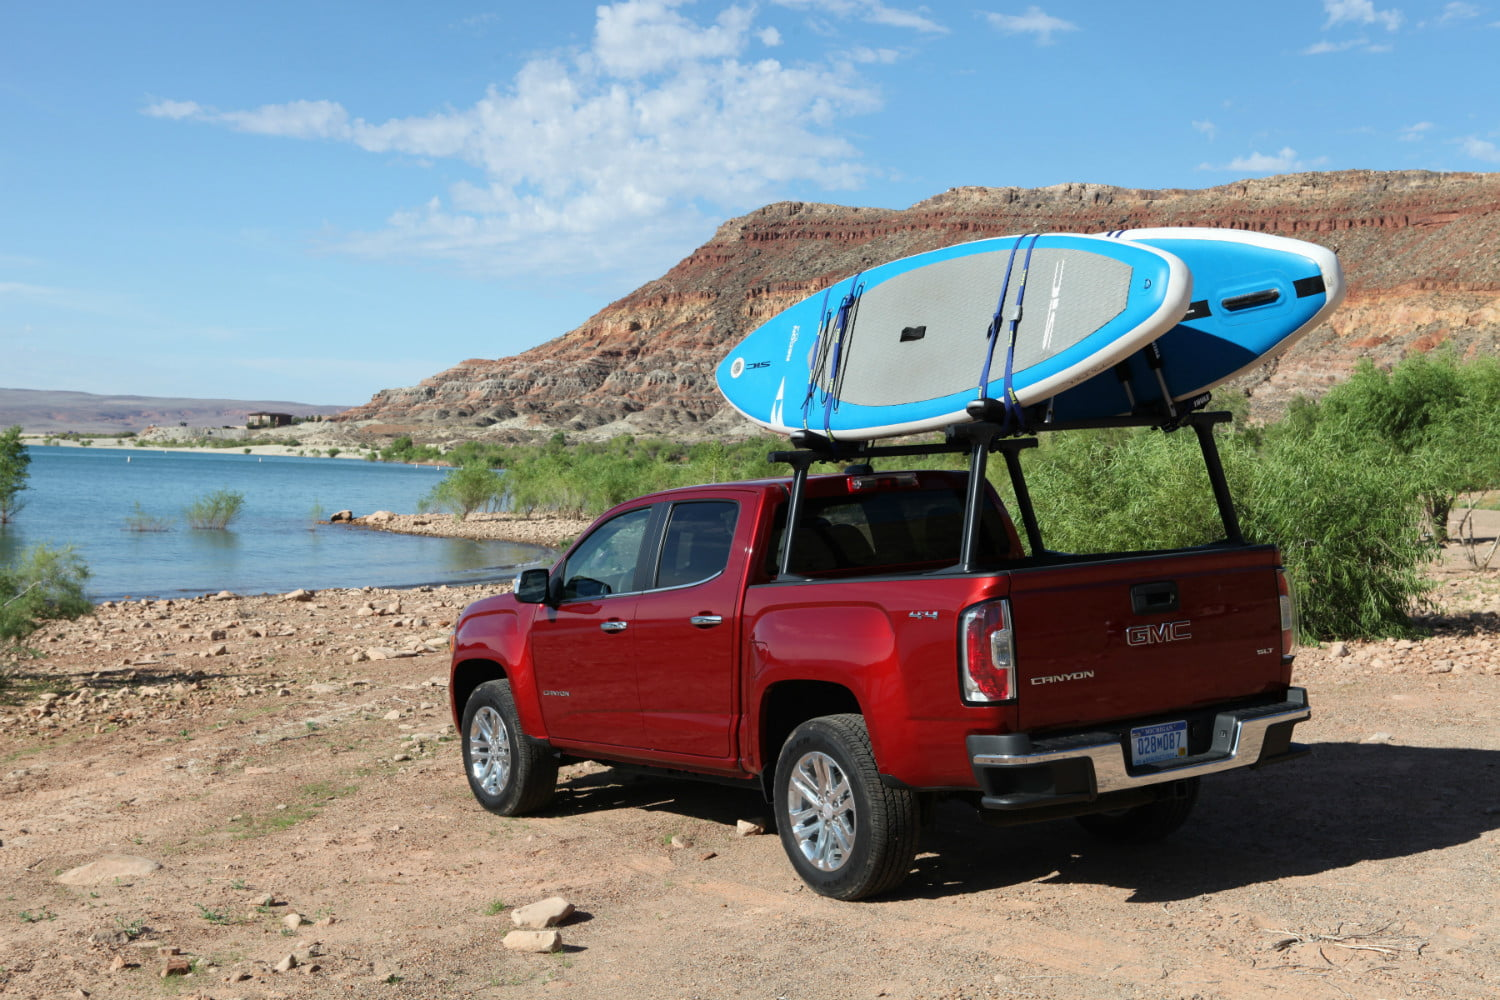 2018 Gmc Canyon Release Date Prices Specs Features Digital Trends Wiring Diagram For Chevy Colorado 2 8 Ltr